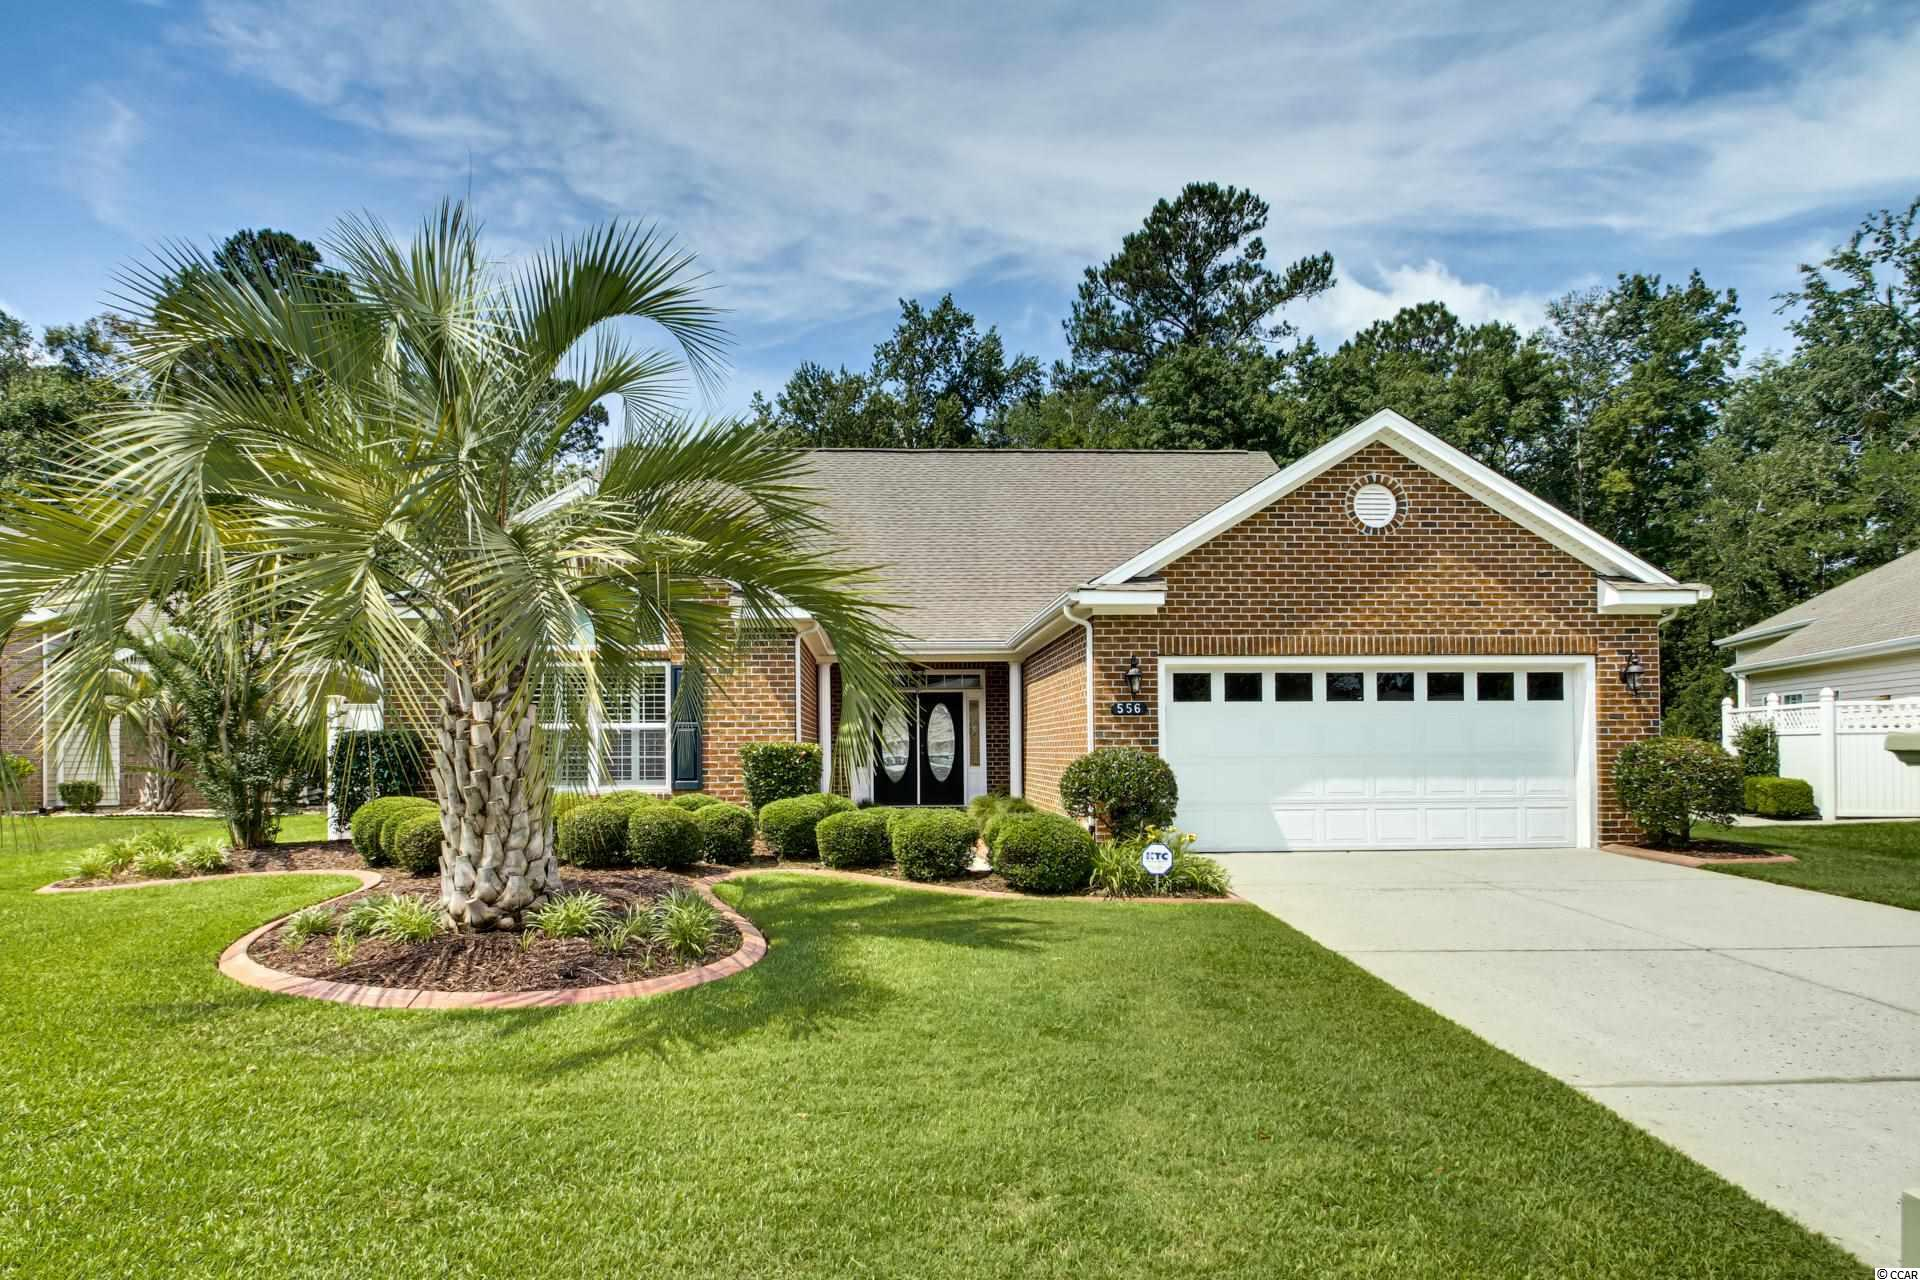 4BR/3.5BA All Brick Home in Arrowhead.  Large home located on Second Green of Cyprus Golf Course at Arrowhead Community. Large rooms, upgrades, high ceilings, Sun Room w/views of golf course.  Second floor has a large Bonus Room, Full Bath and large bedroom.  2 car garage plus storage.  D R Horton builder.